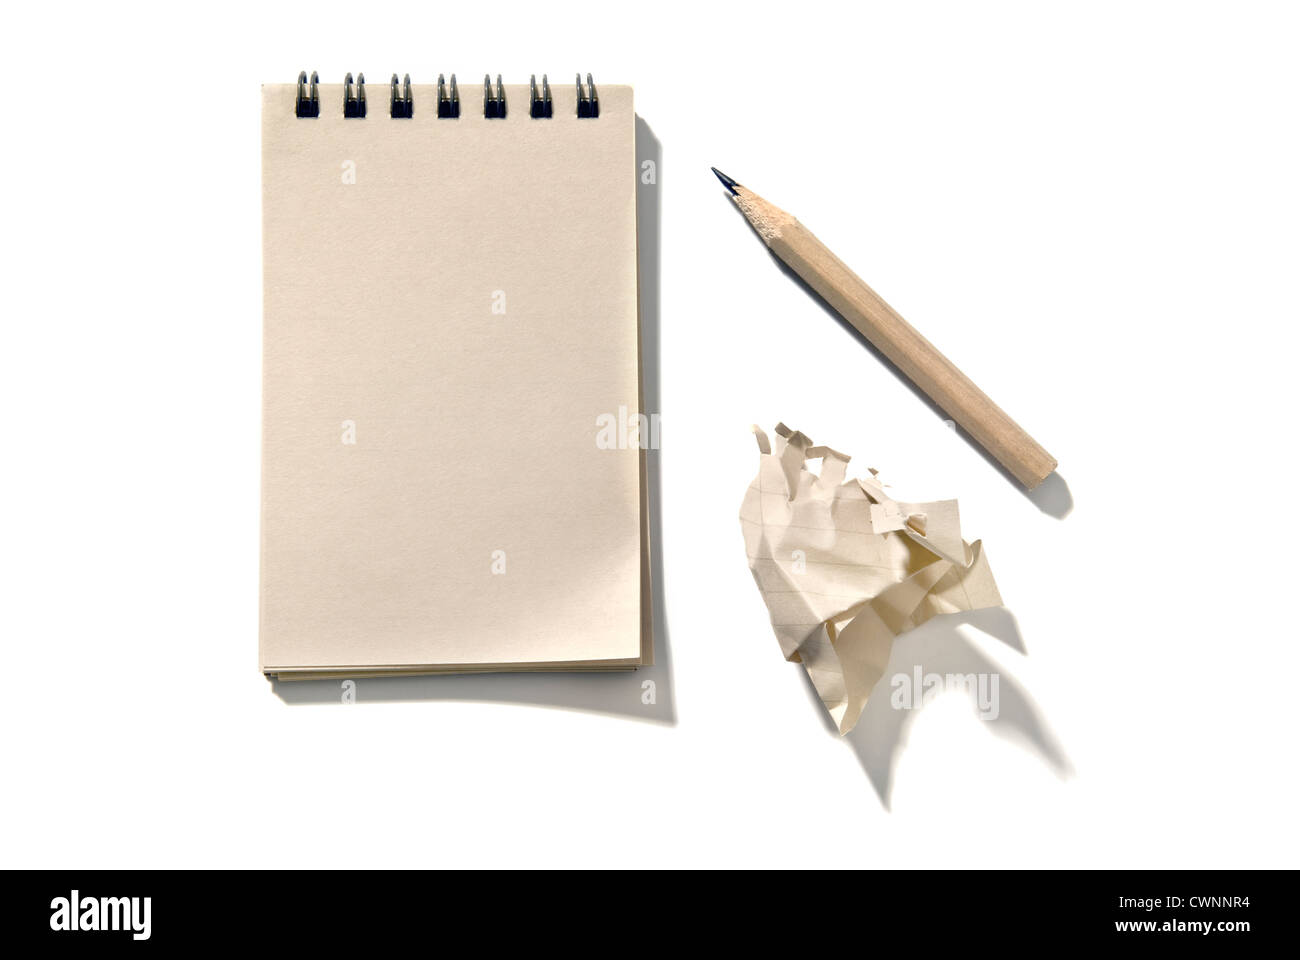 Notepad with a pencil and a piece of crumpled paper, isolated on 100% white background - Stock Image